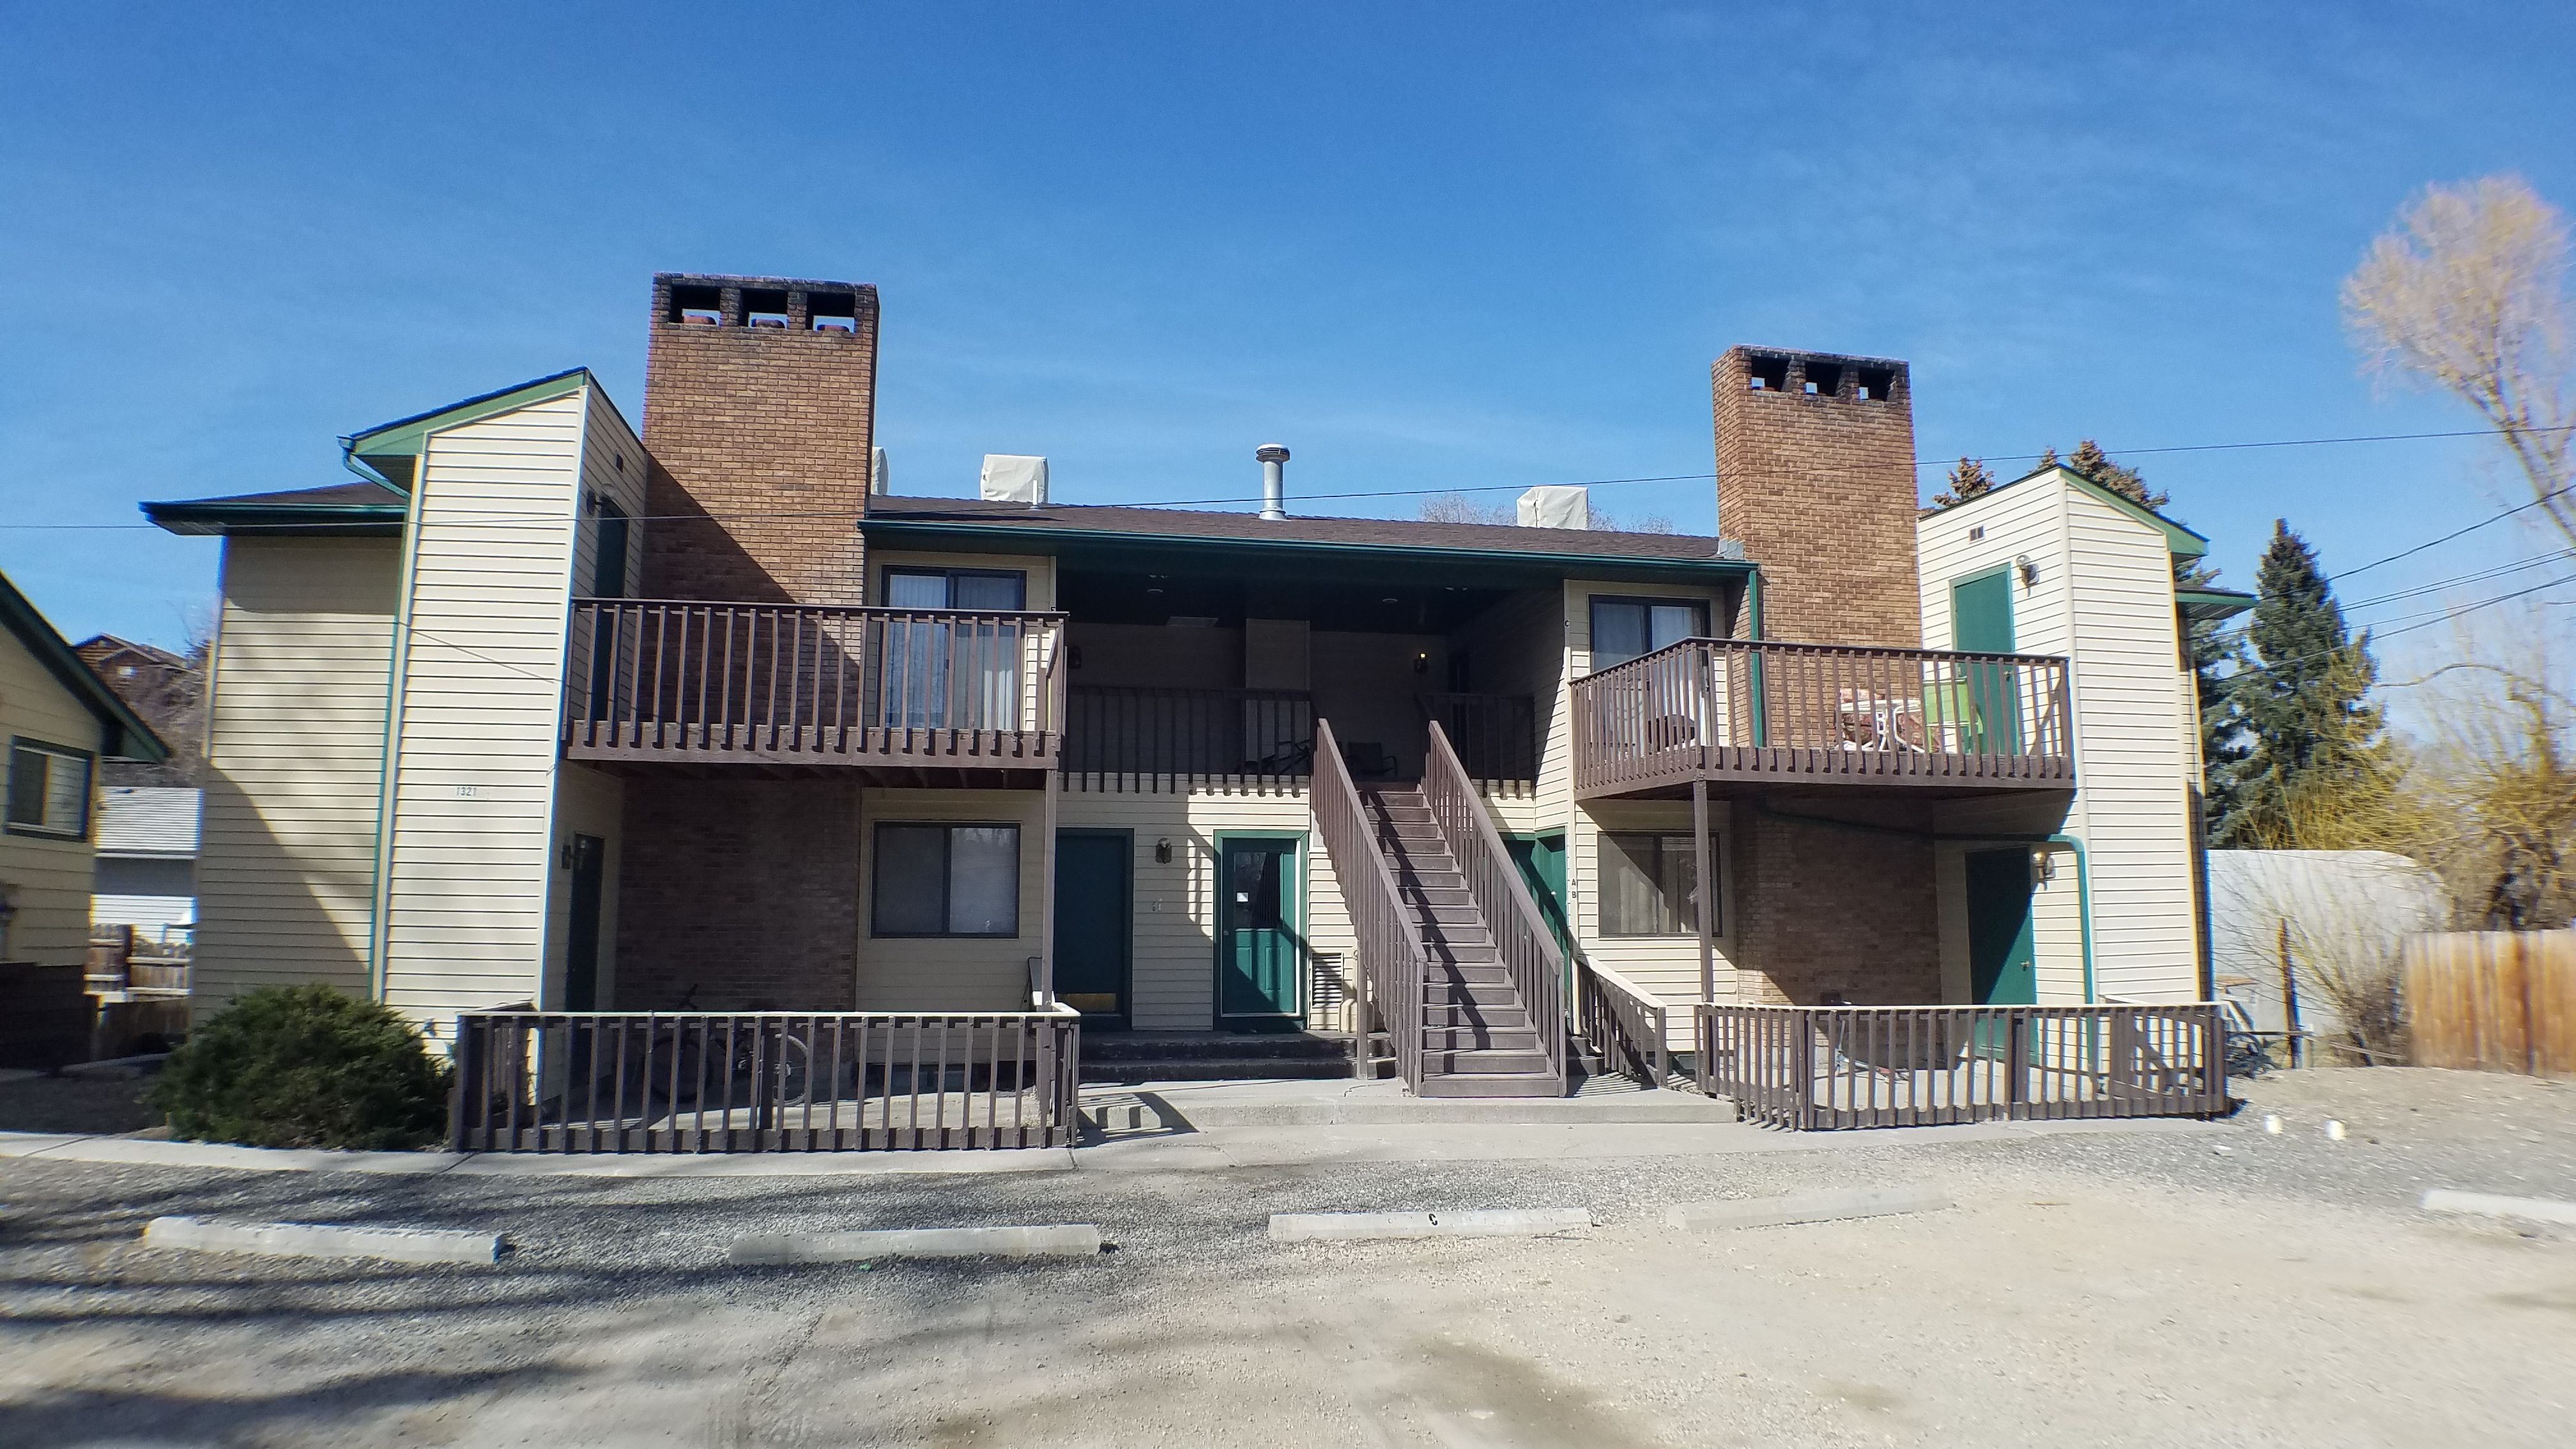 3 Bed 2 Full Bath, upstairs Apartment1321 1/2 17th Street